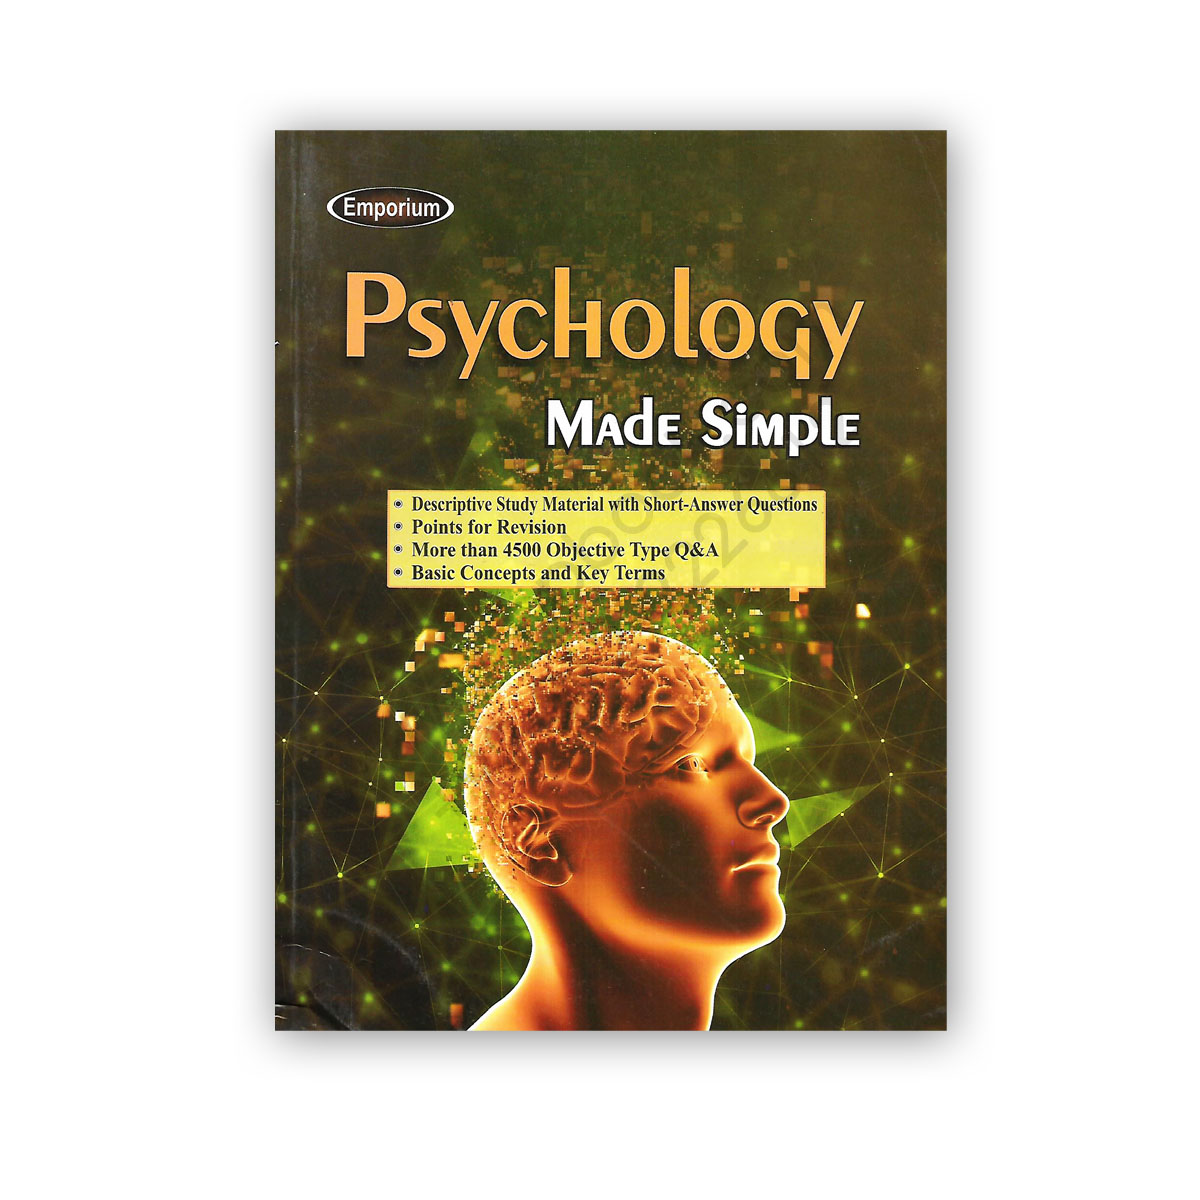 psychology made simple by attique malik & hina babar - emporium